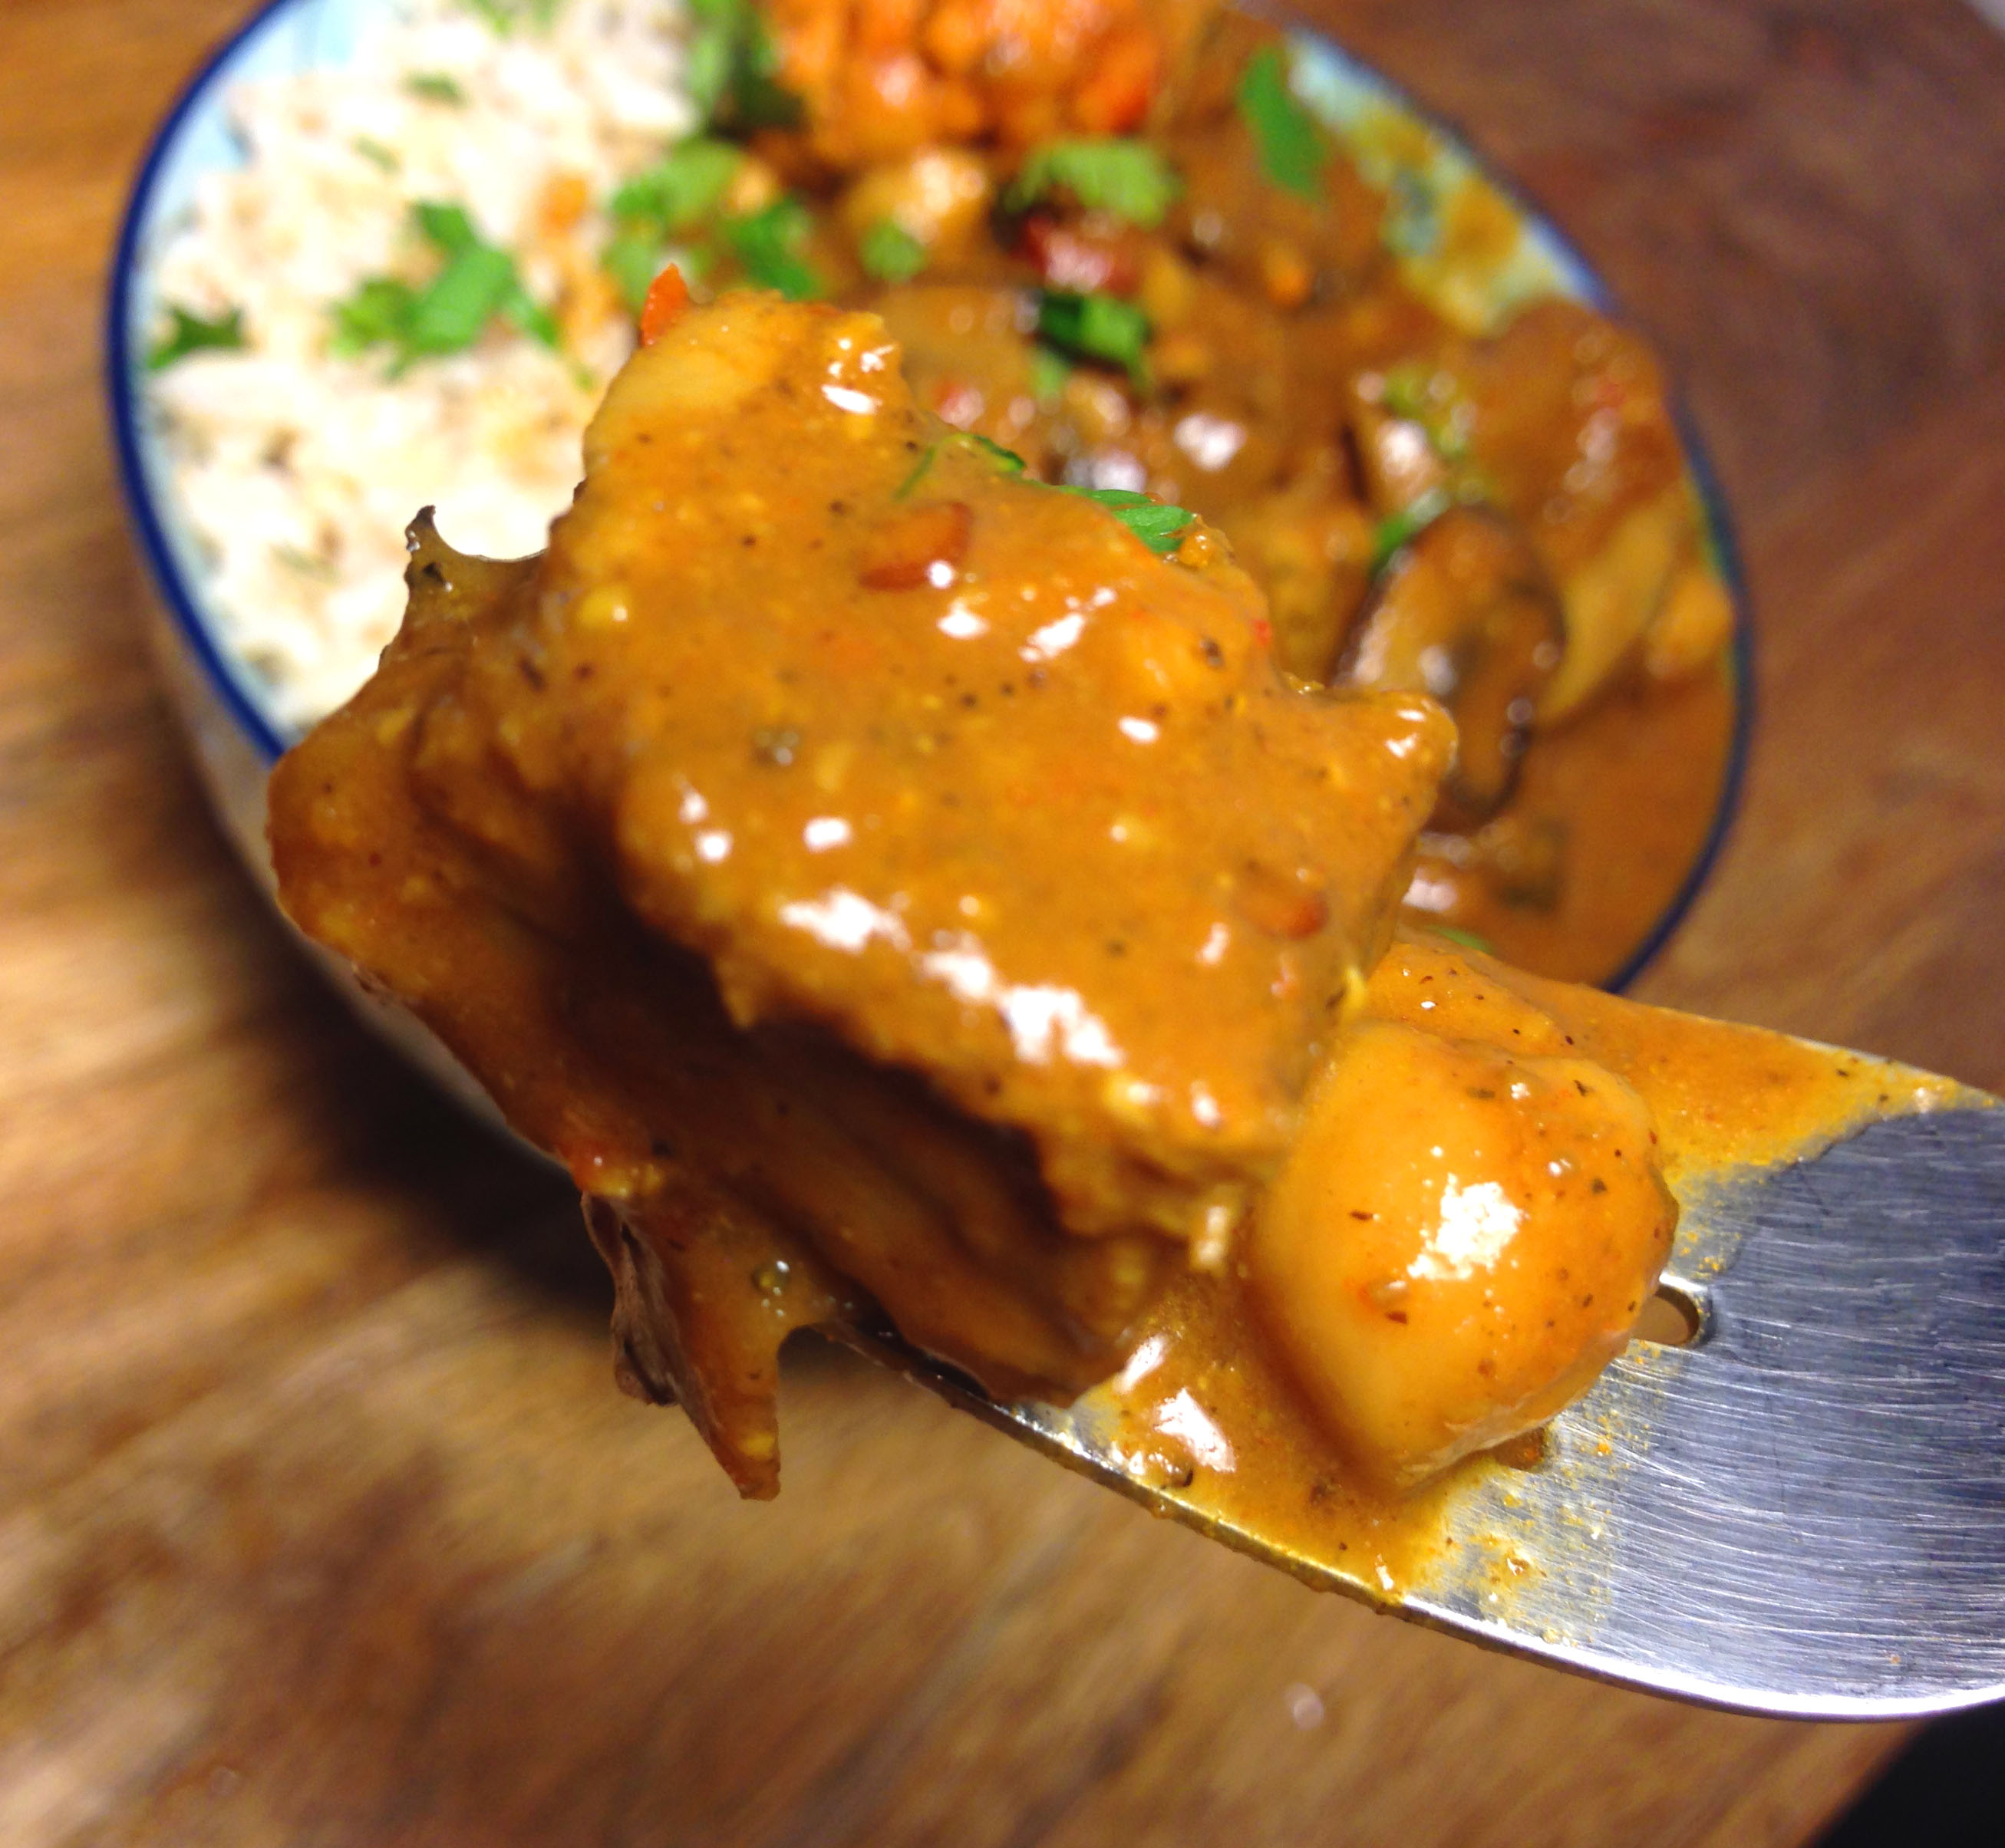 Spicy Vegan Chicken And Mushroom Curry With Cauliflower And